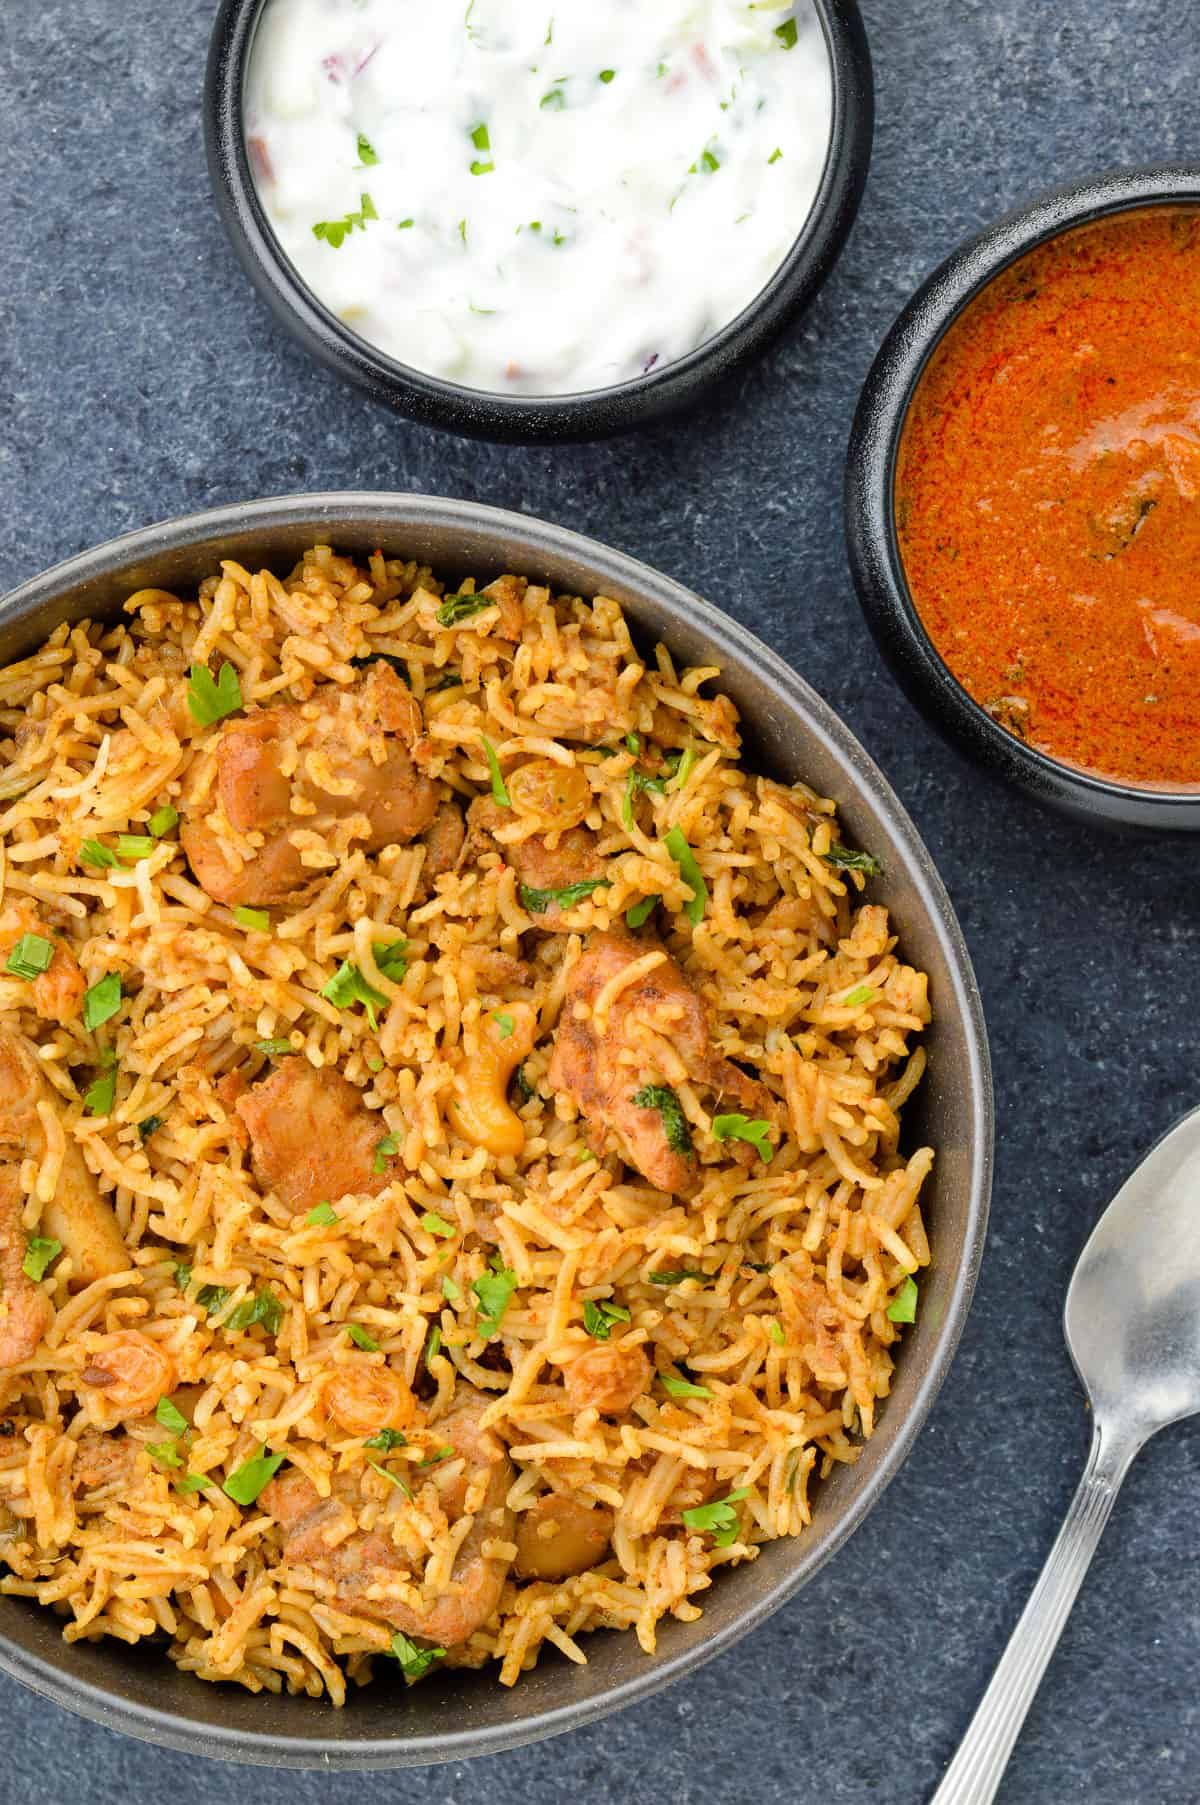 chicken biryani served on a plate, along with a bowl of yogurt, bowl of indian curry, a glass of water, and lemon wedges on the side